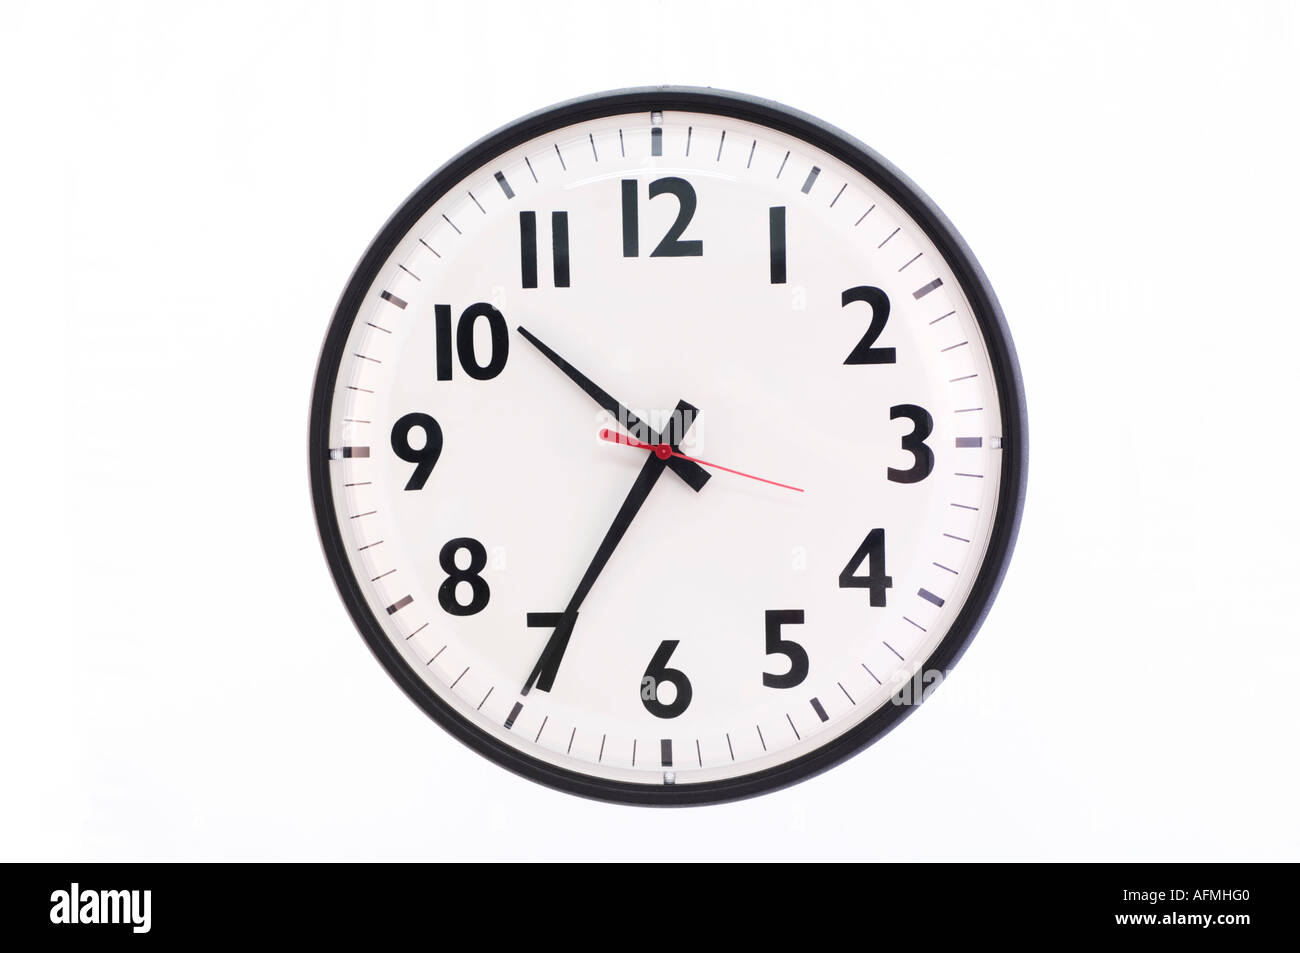 wall clock in office - Stock Image